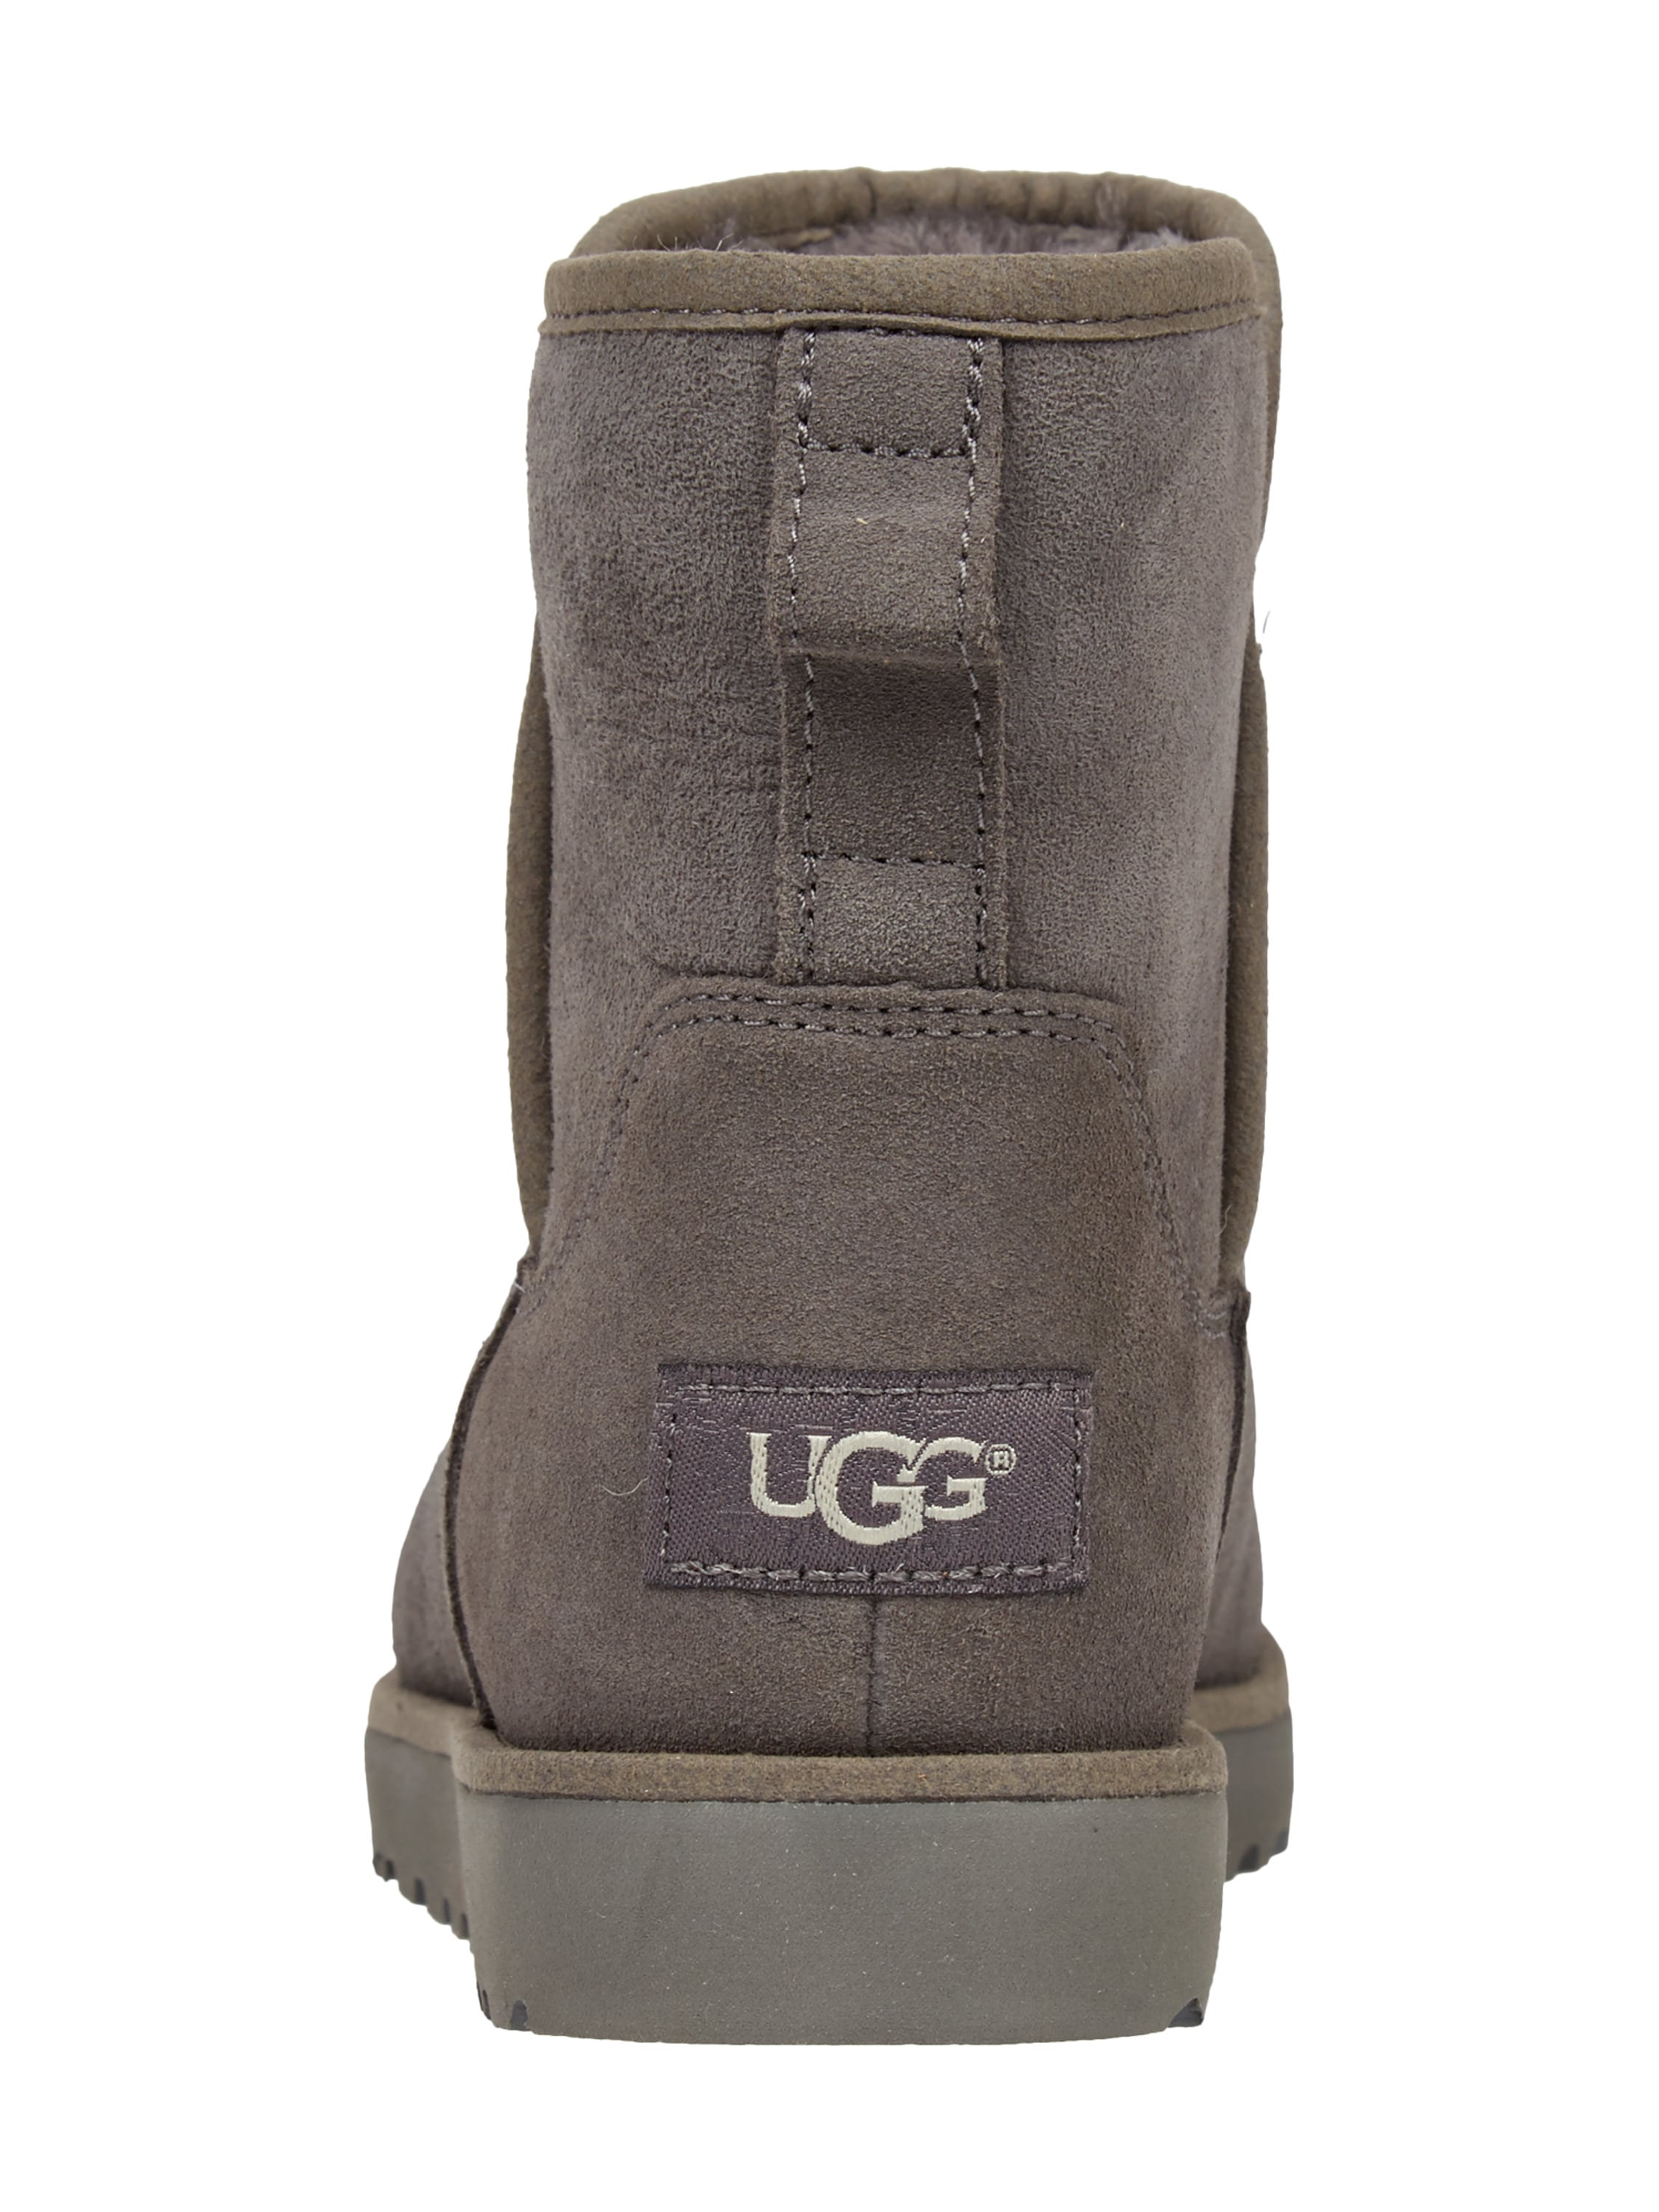 51473b4d89c Ugg Australia Classic Short Beige - cheap watches mgc-gas.com